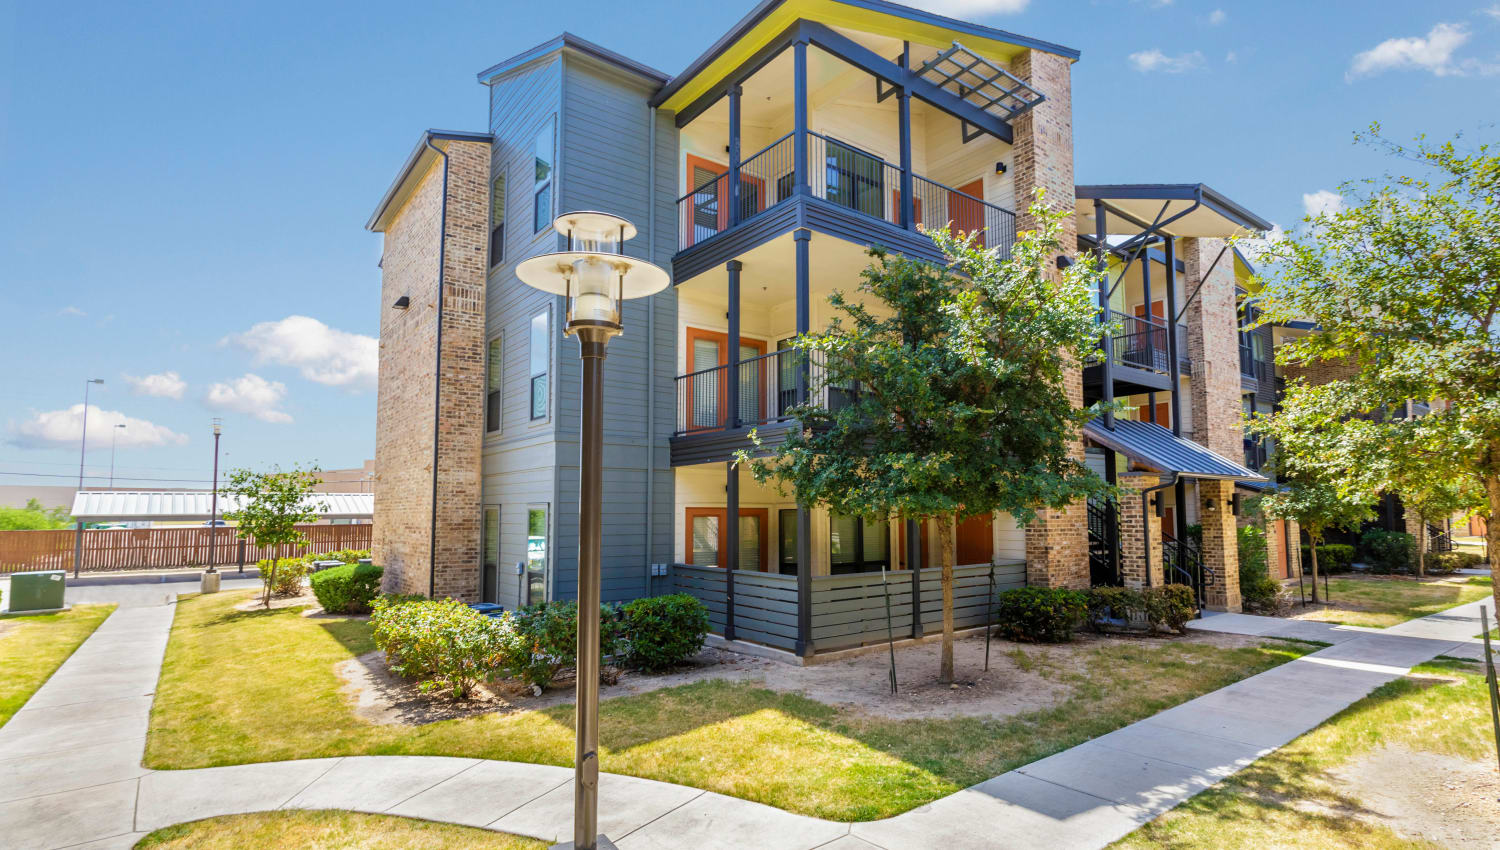 Exterior view of a resident building at Tacara at Westover Hills in San Antonio, Texas